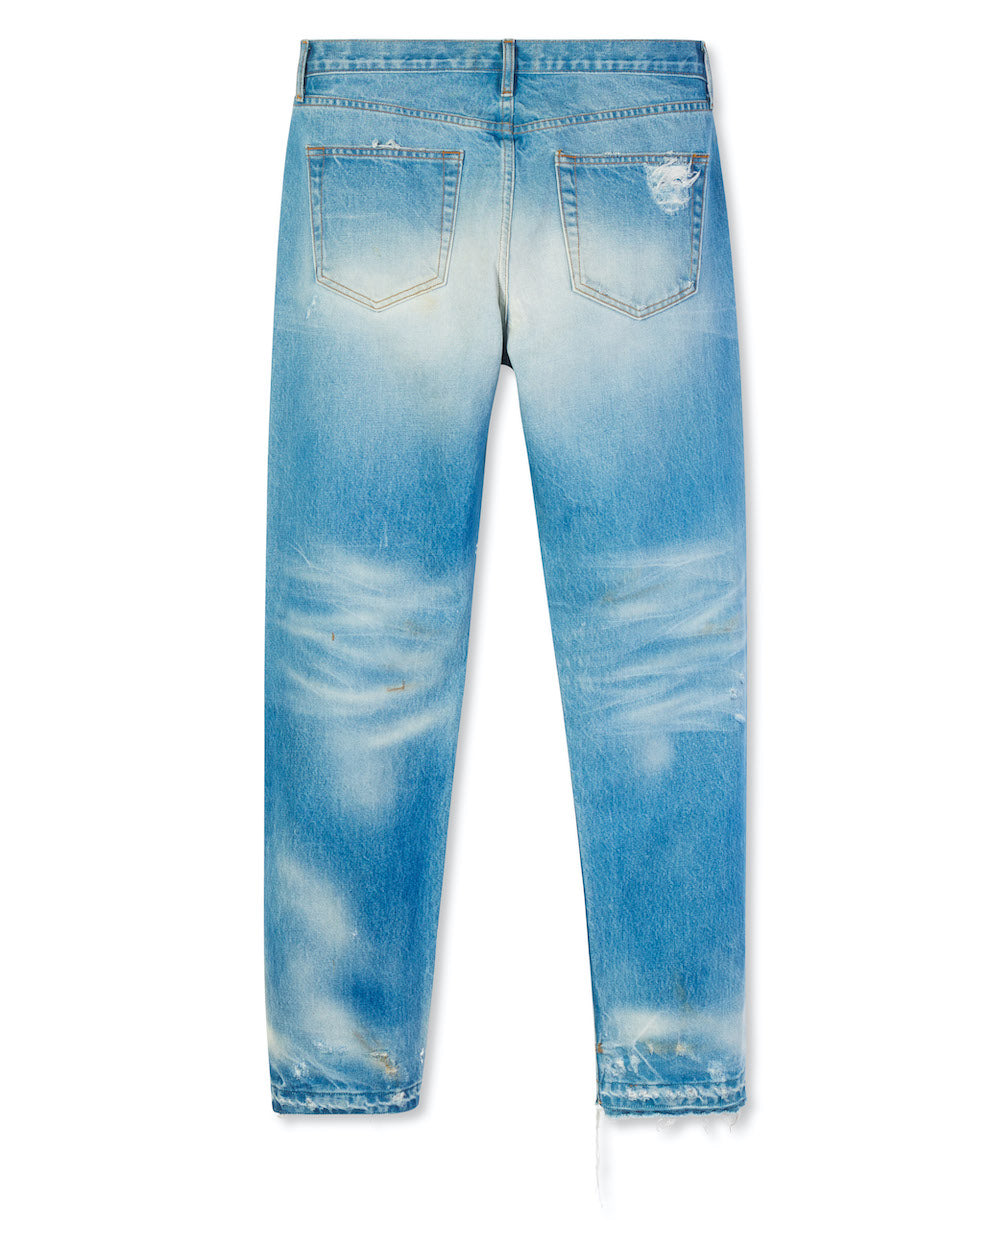 FARM WORK DENIM